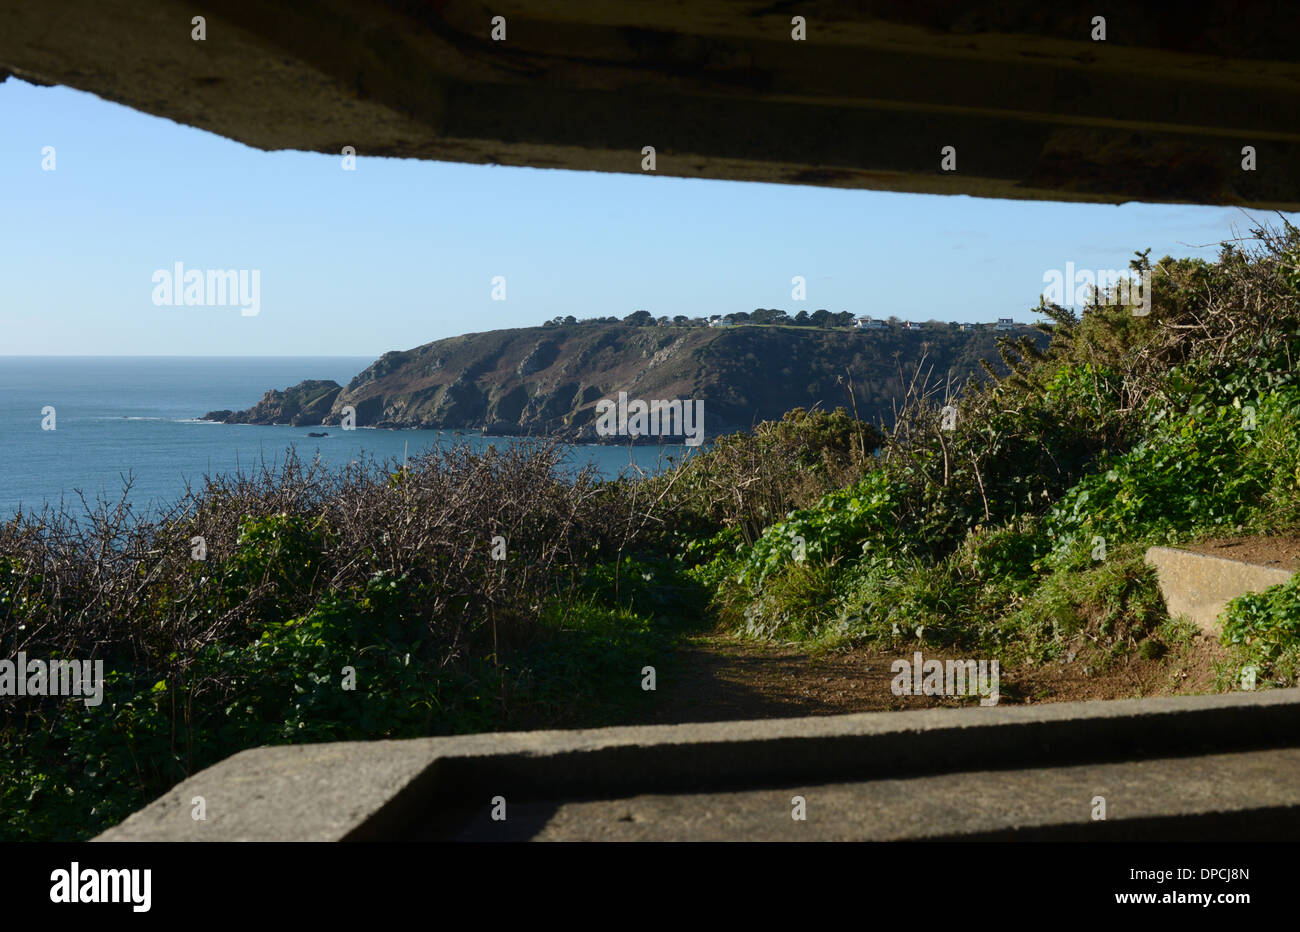 View from inside La Moye Battery, a WW2 gun battery, overlooking Moulin Huet Bay and Saints Bay in Guernsey, Channel Islands. - Stock Image